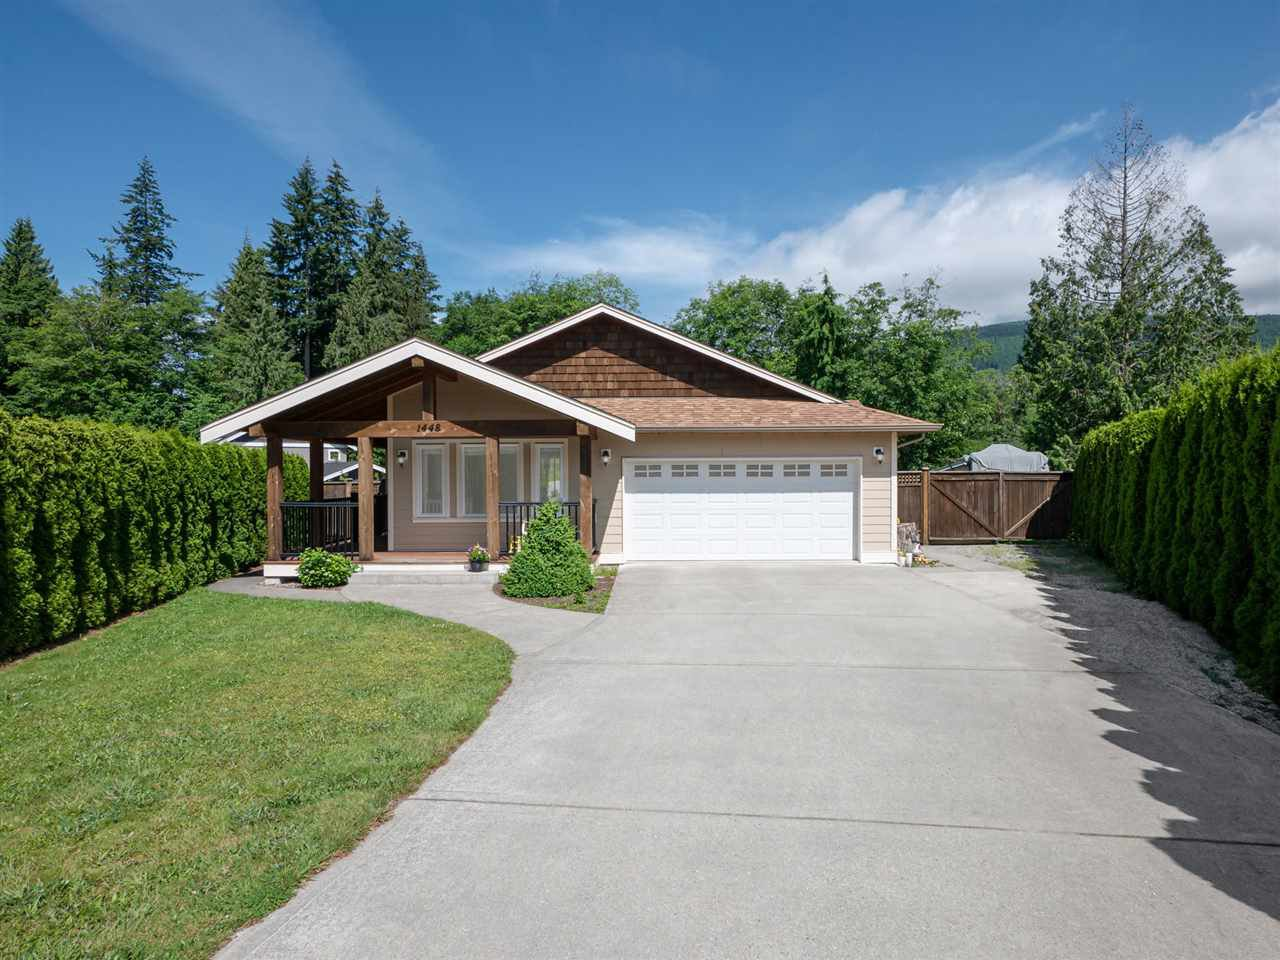 """Main Photo: 1448 MOONDANCE Place in Gibsons: Gibsons & Area House for sale in """"Georgia Crest - Phase 2"""" (Sunshine Coast)  : MLS®# R2468717"""